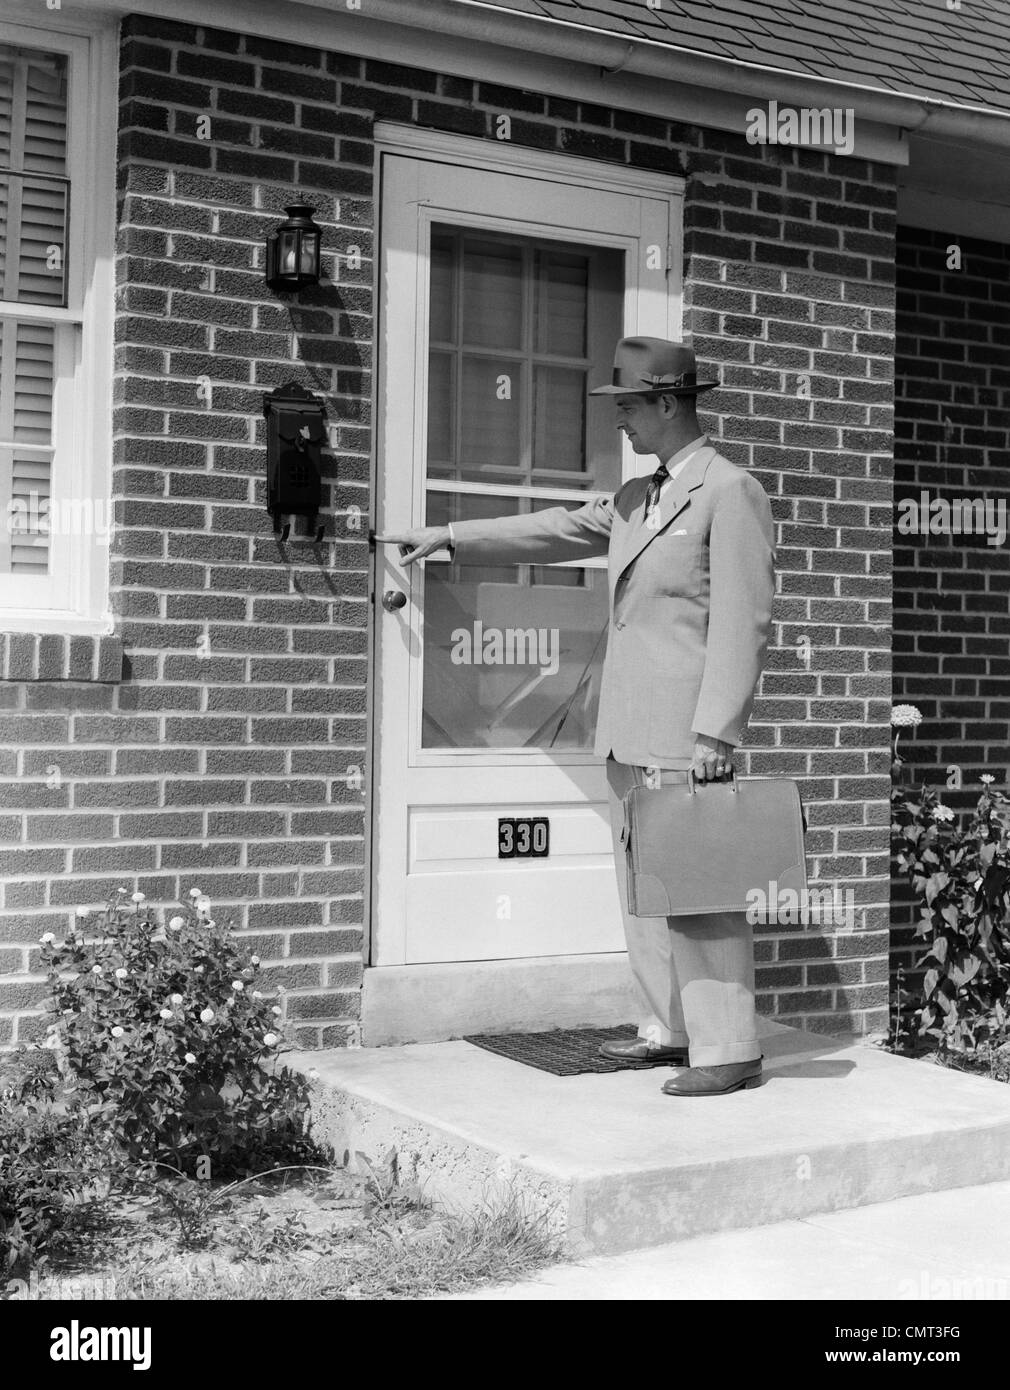 1950S House Classy 1950S Doortodoor Salesman Man Ringing Doorbell At Suburban House Decorating Design